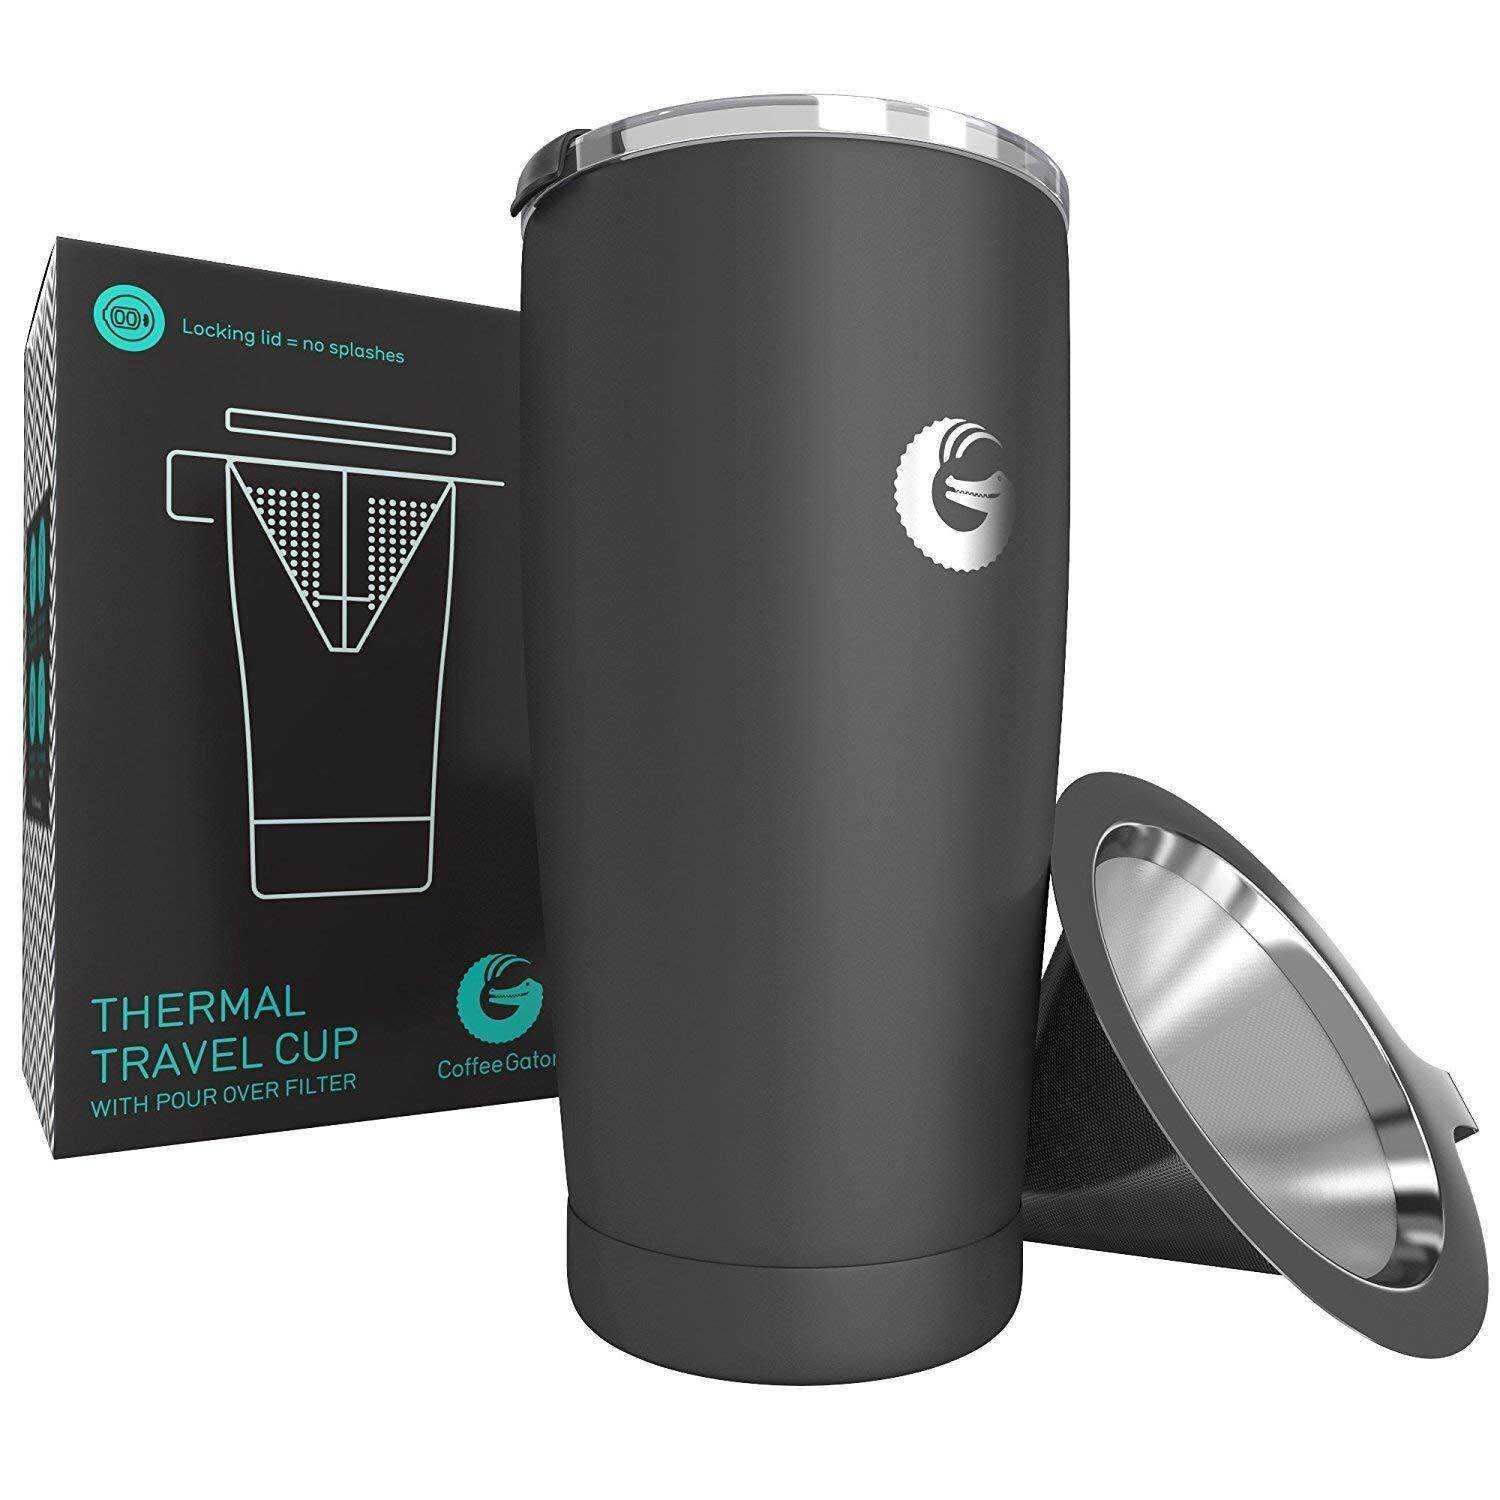 Coffee Gator Personal Coffee Brewing Travel Mug - Vacuum Insulated Stainless Steel Pour Over Maker With Locking Lid - 500ml